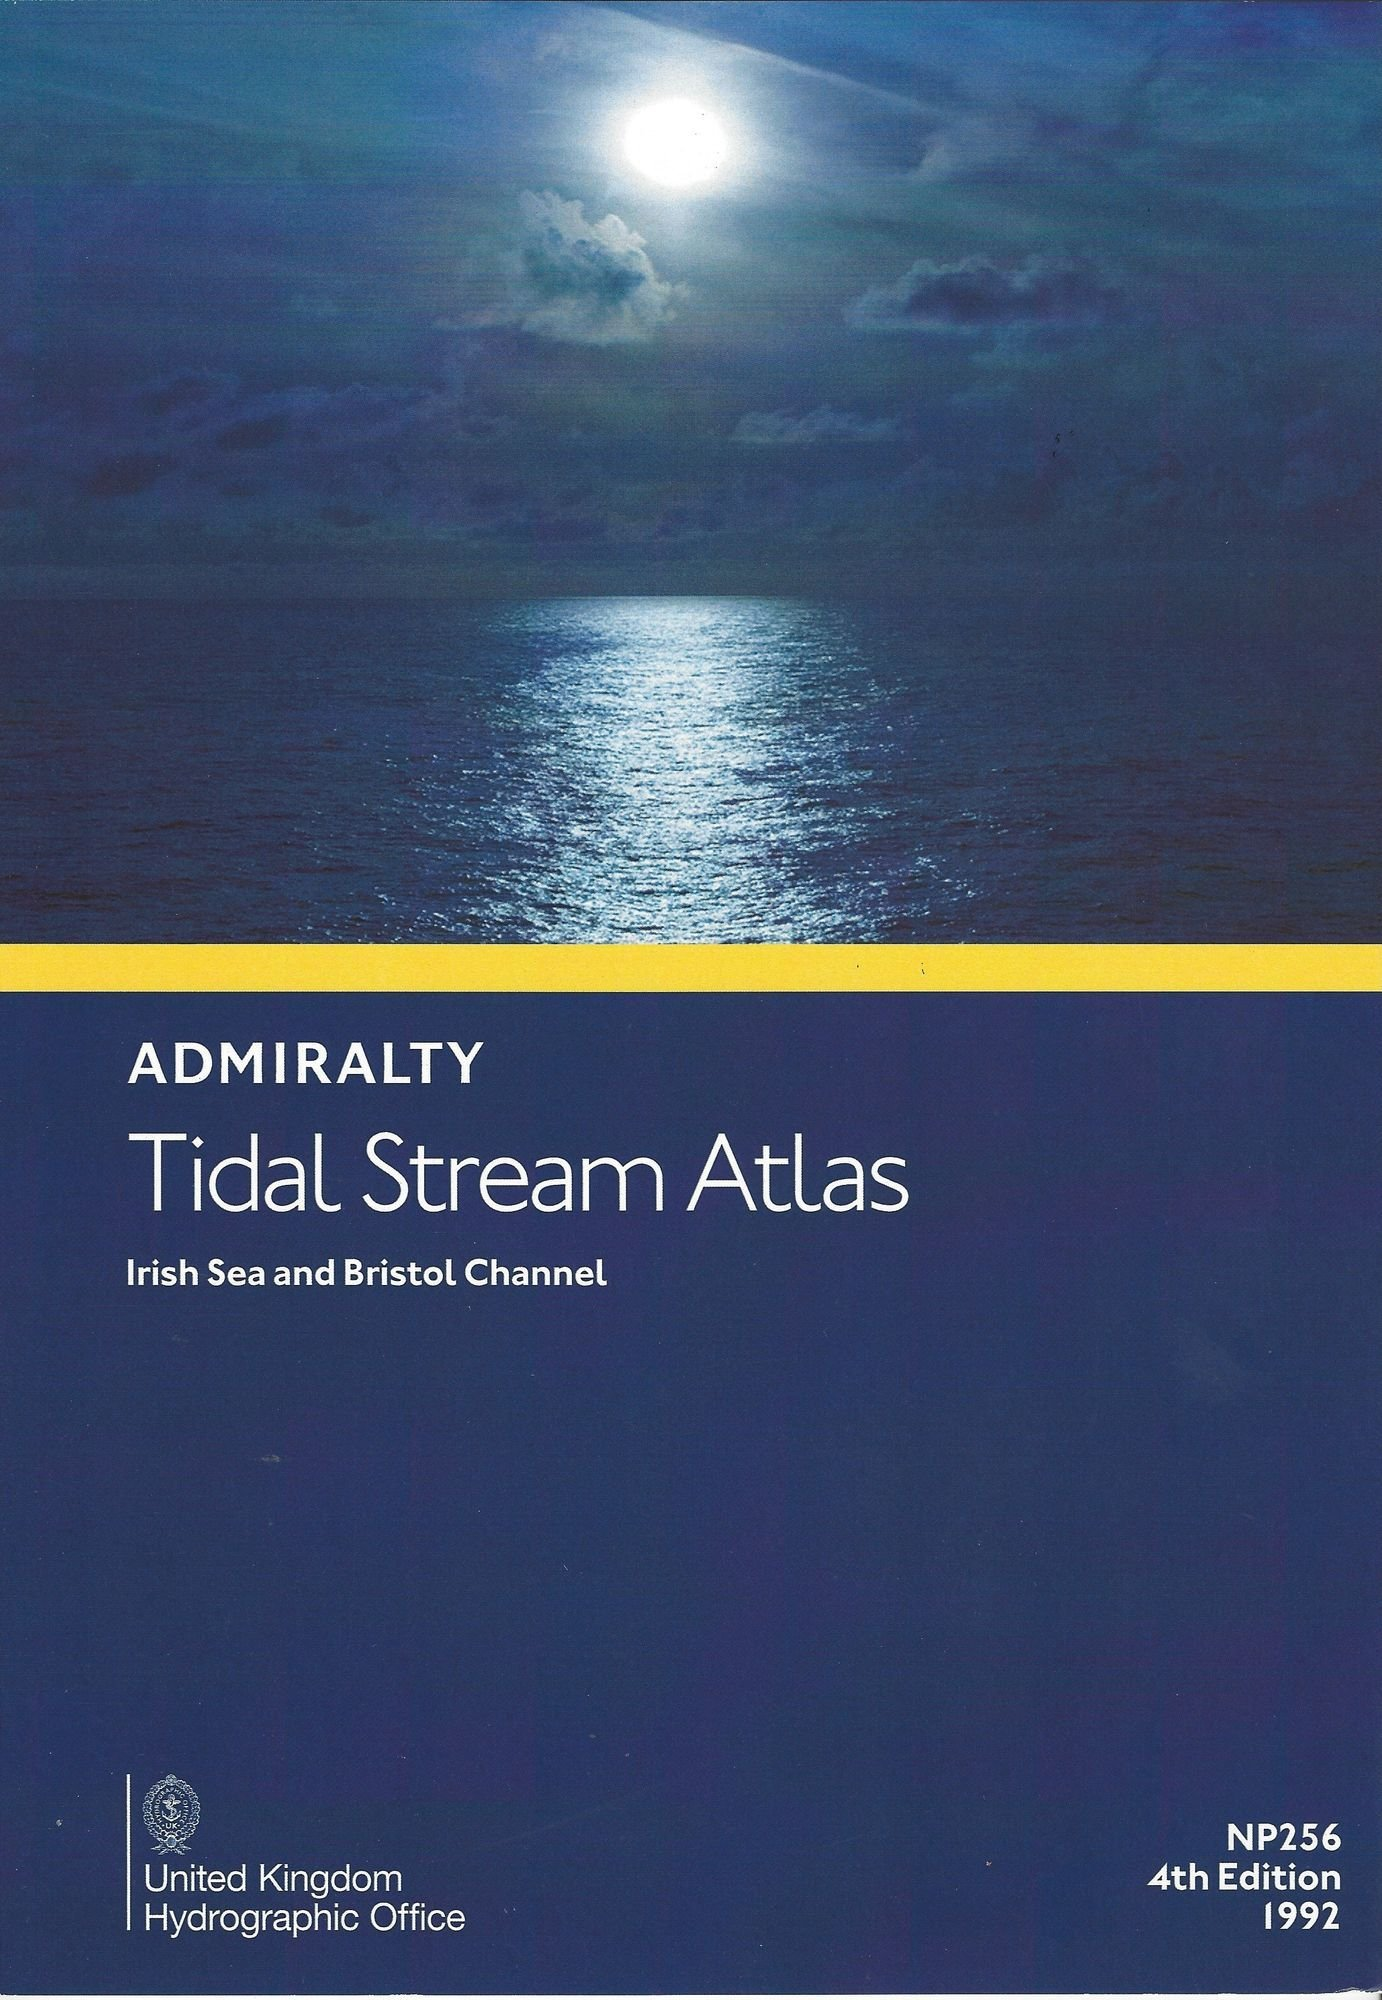 Admiralty Tidal Stream Atlas Np256 Irish Sea And Bristol Channel